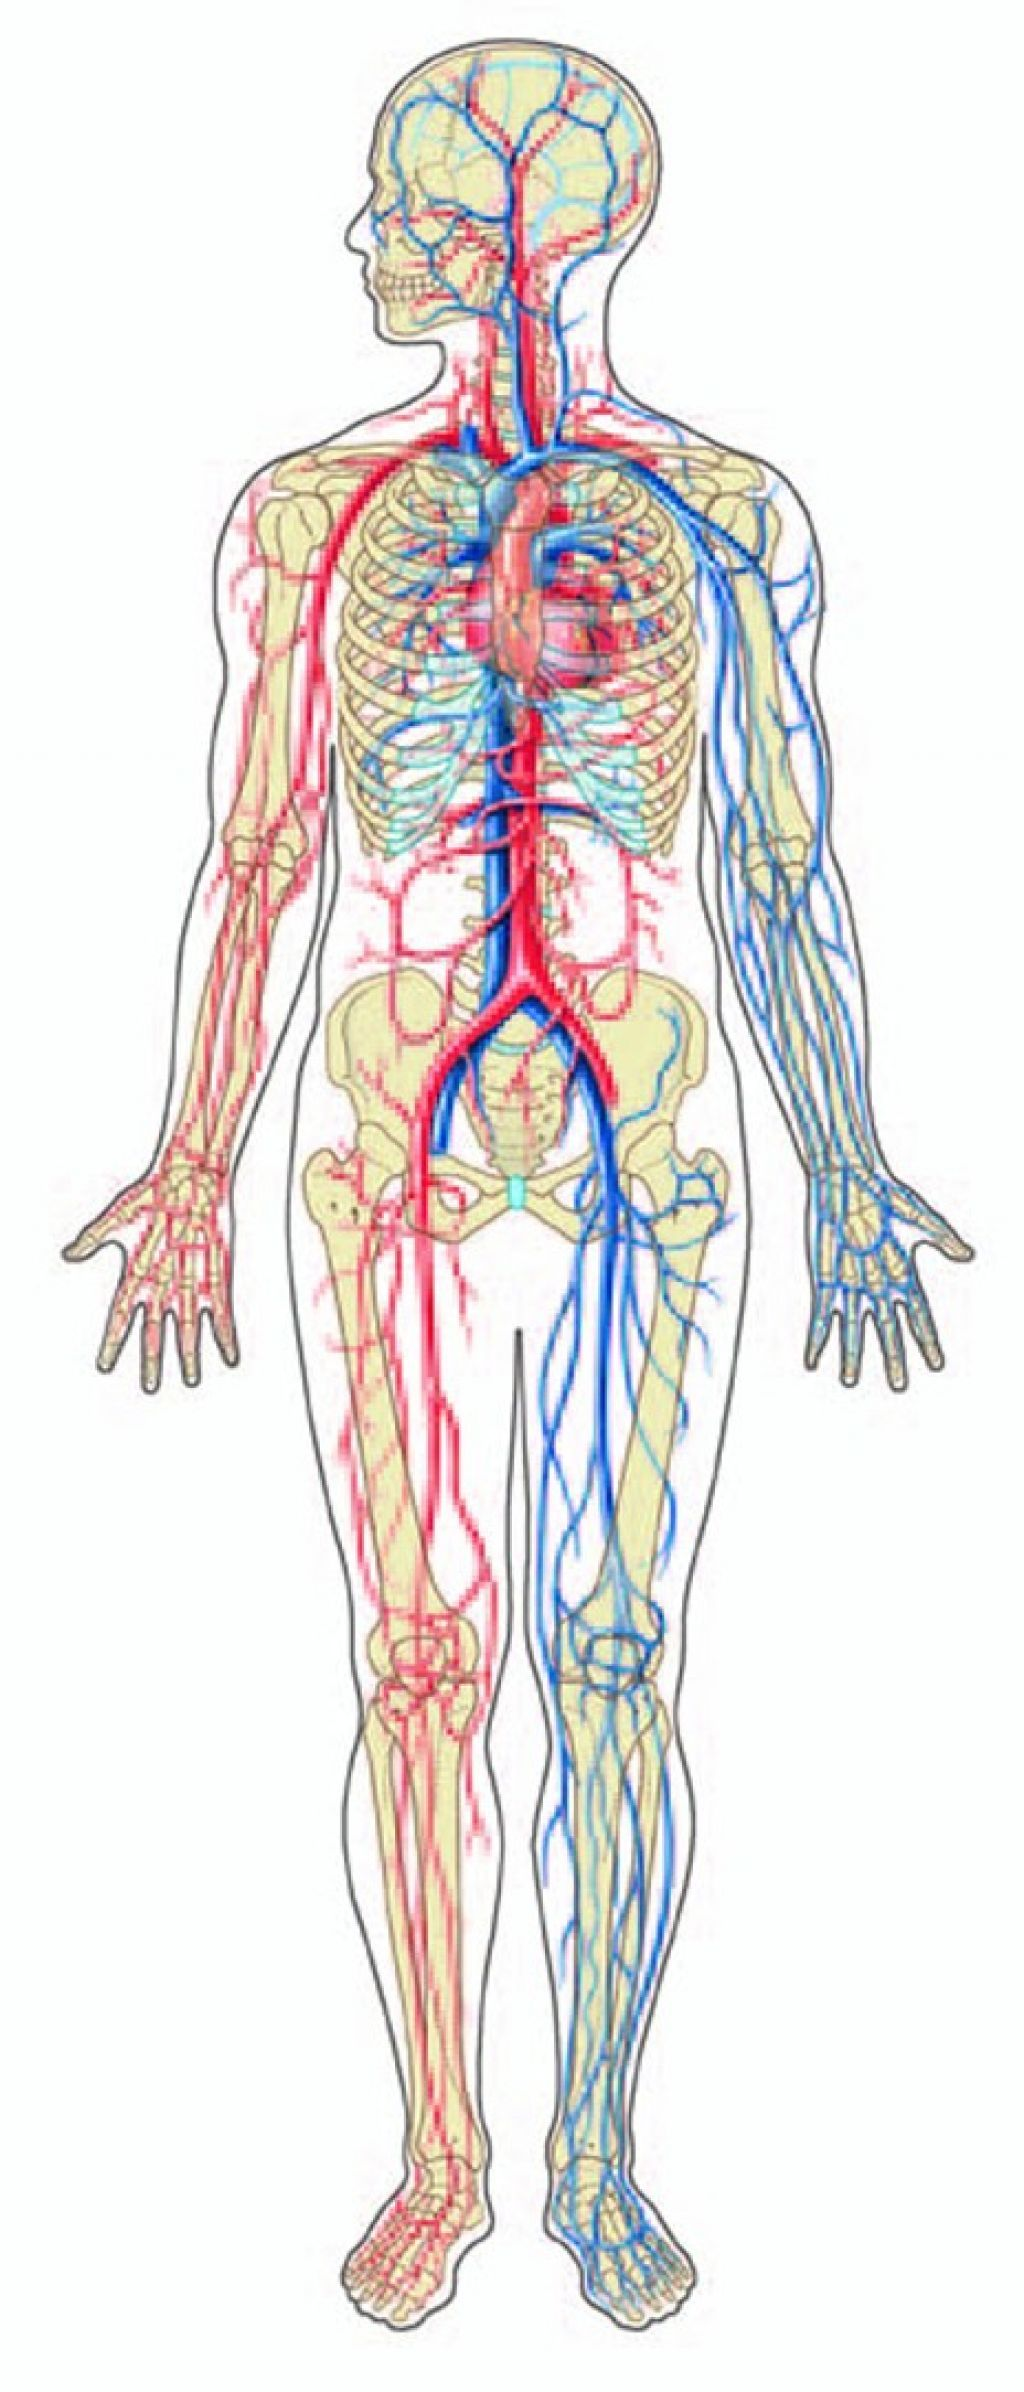 Cancer clipart circulatory system. Diagram black and white